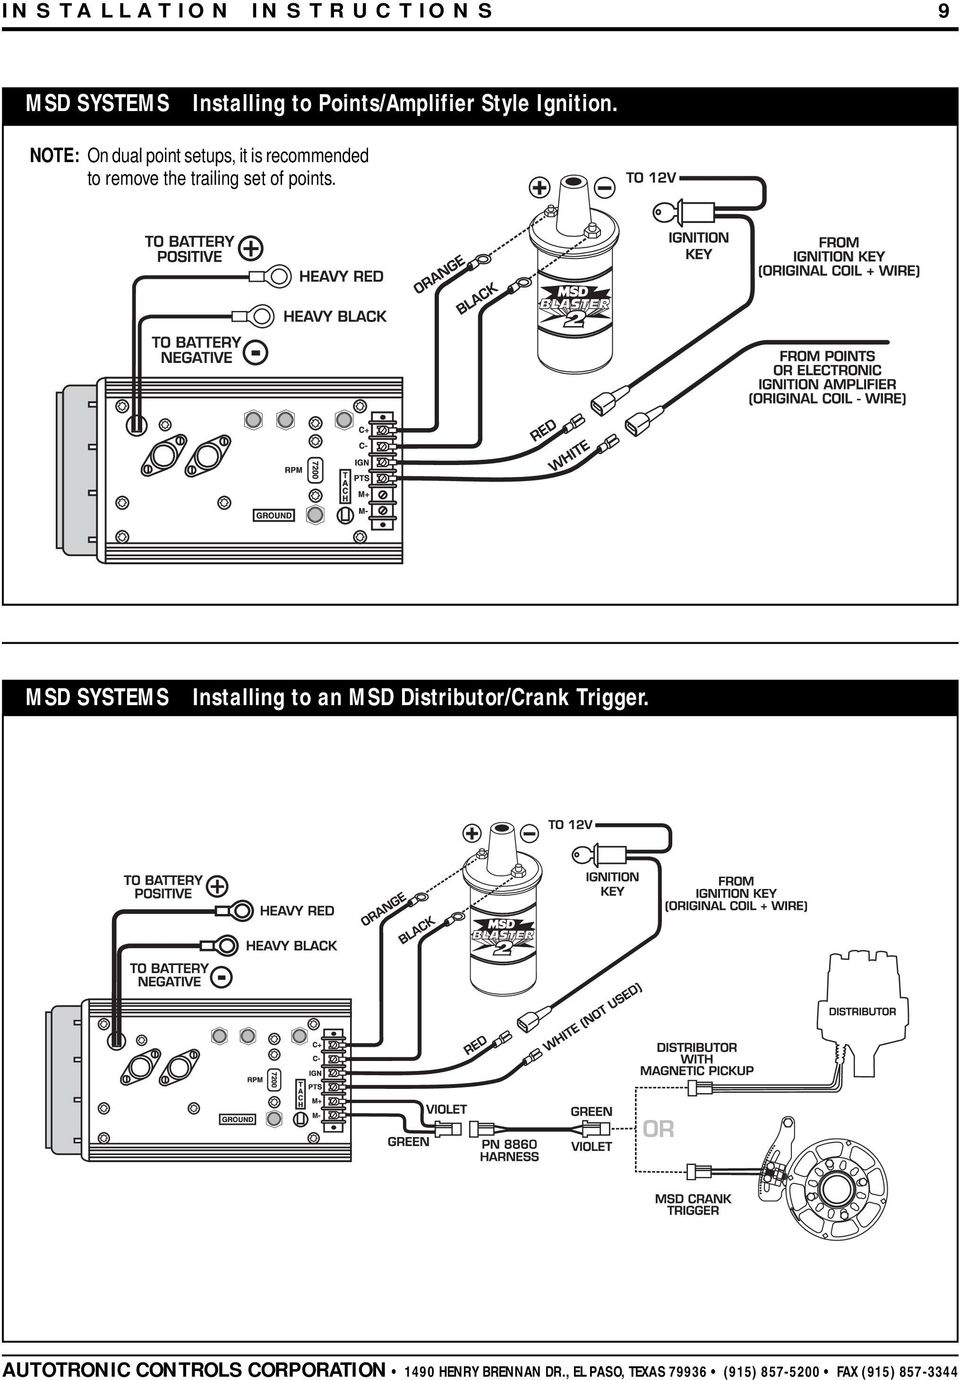 msd 7al-2 ignition pn 7220, 7224, 7226, pdf msd 8460 wiring diagram